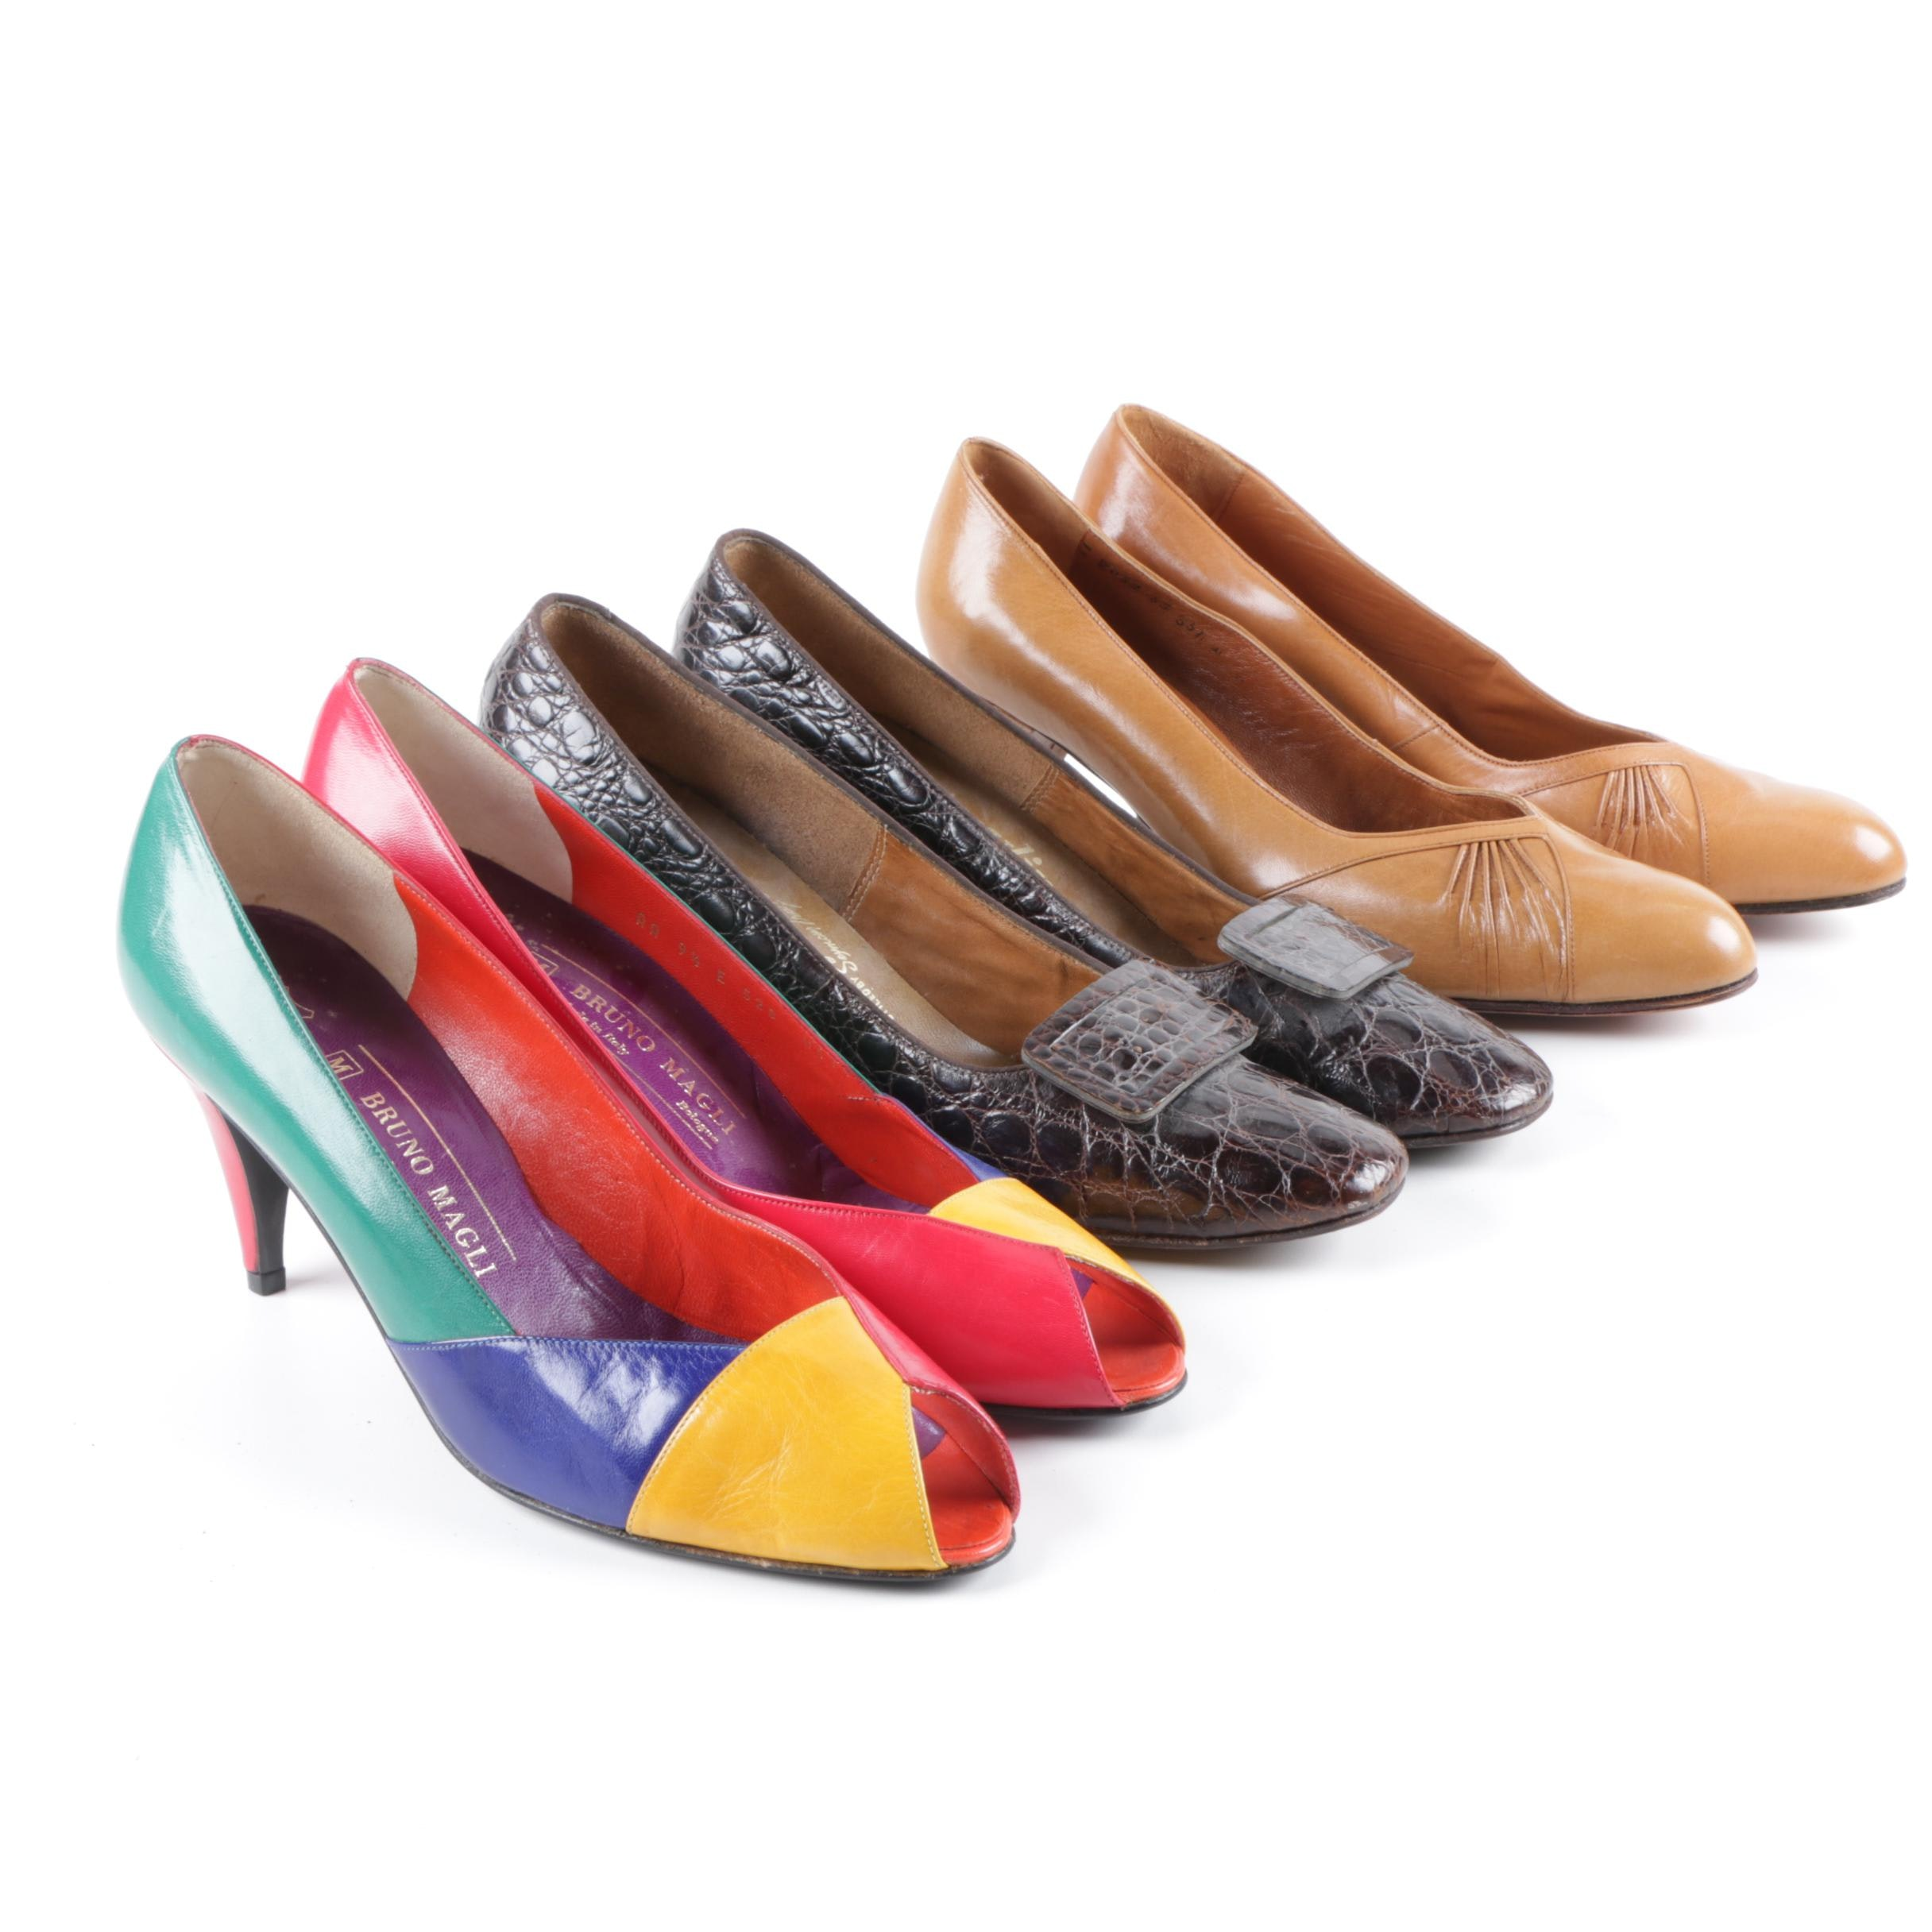 Women's Vintage Heels Including Bruno Magli